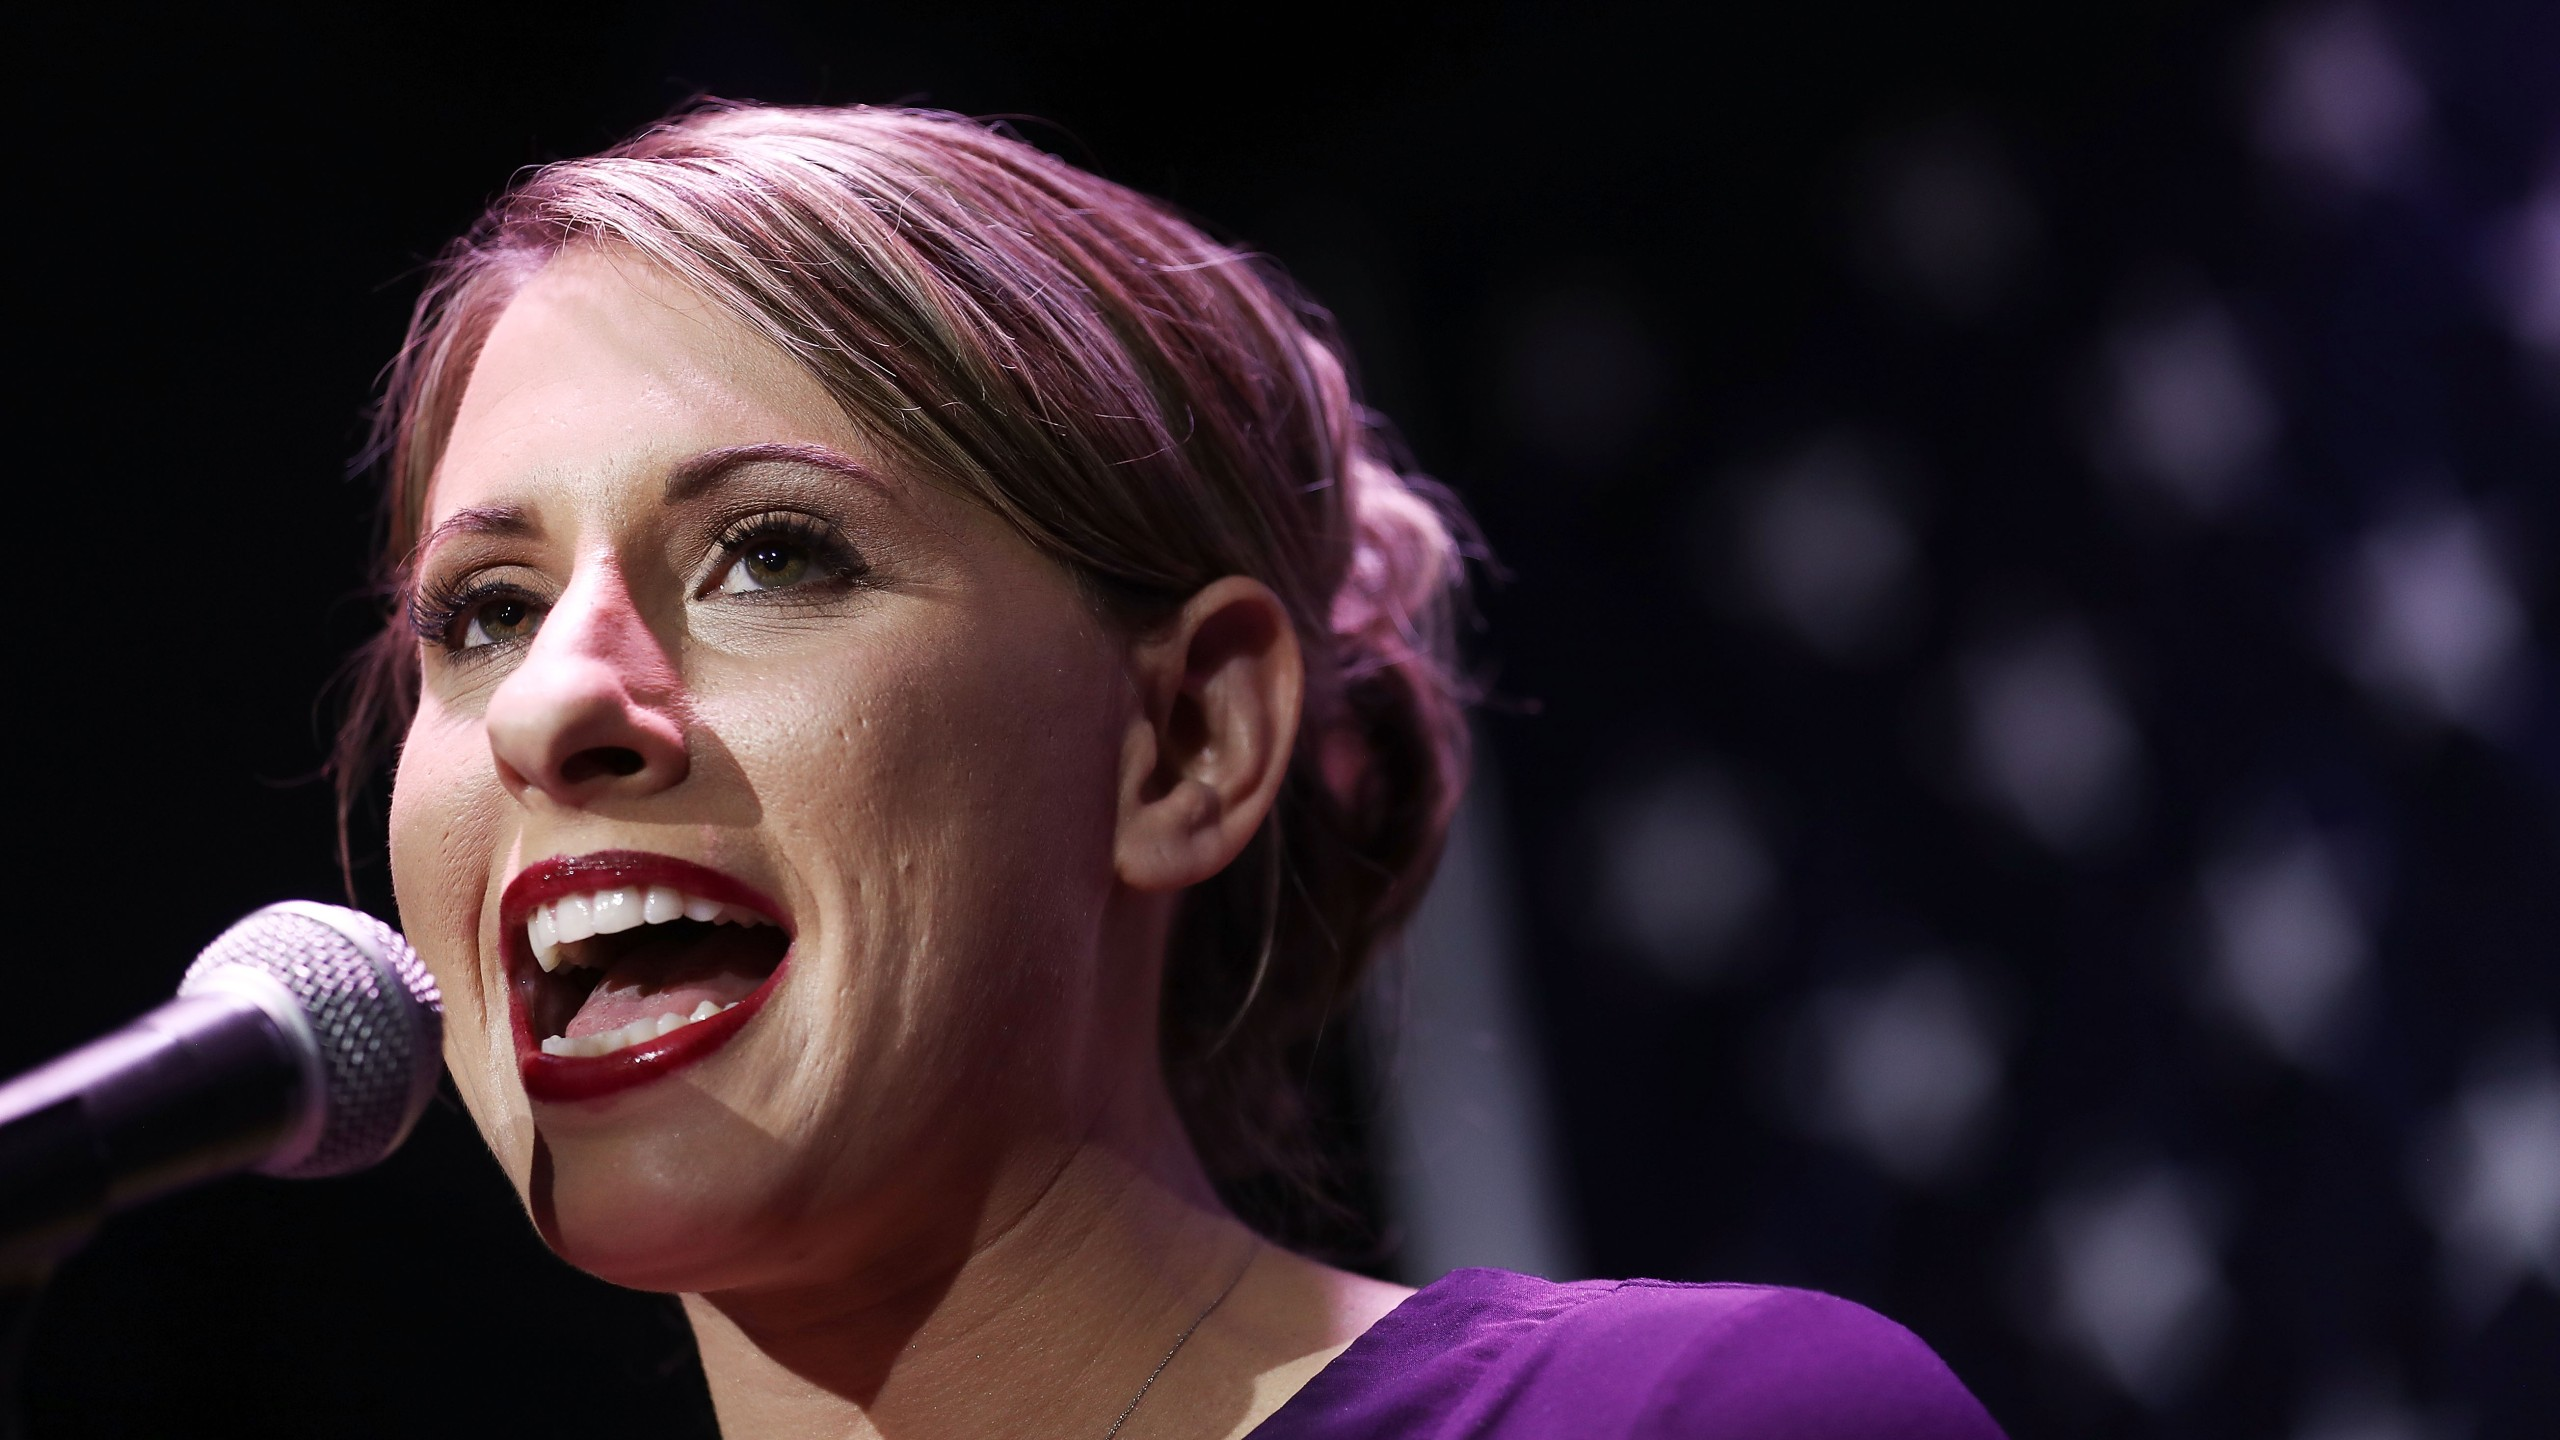 Democratic Congressional candidate Katie Hill speaks to supporters at her election night party in California's 25th Congressional district on Nov. 6, 2018, in Santa Clarita, Calif.(Credit: Mario Tama/Getty Images)